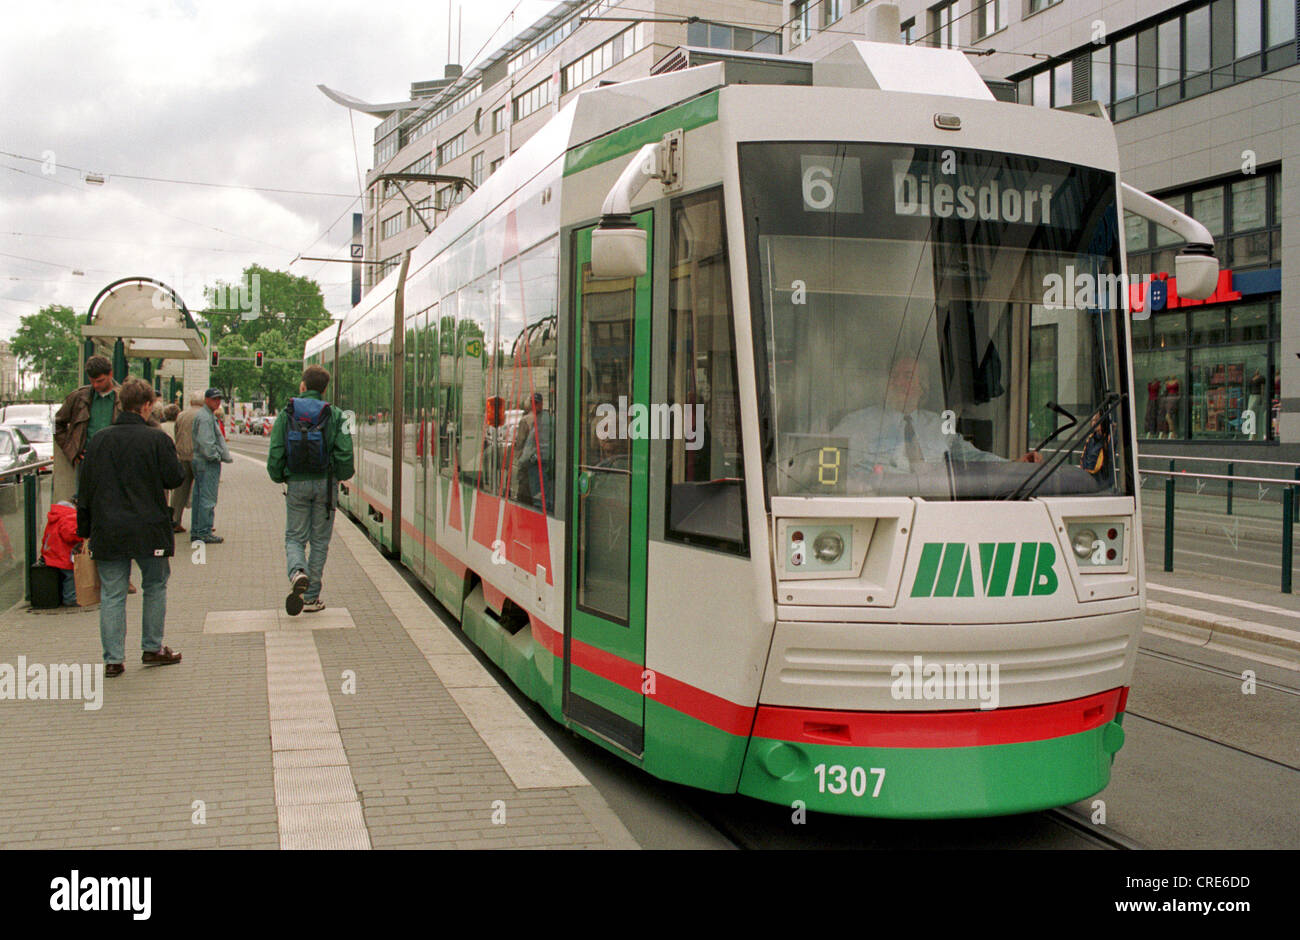 tram of the mvb at a bus stop magdeburg germany stock photo royalty free image 48870233 alamy. Black Bedroom Furniture Sets. Home Design Ideas